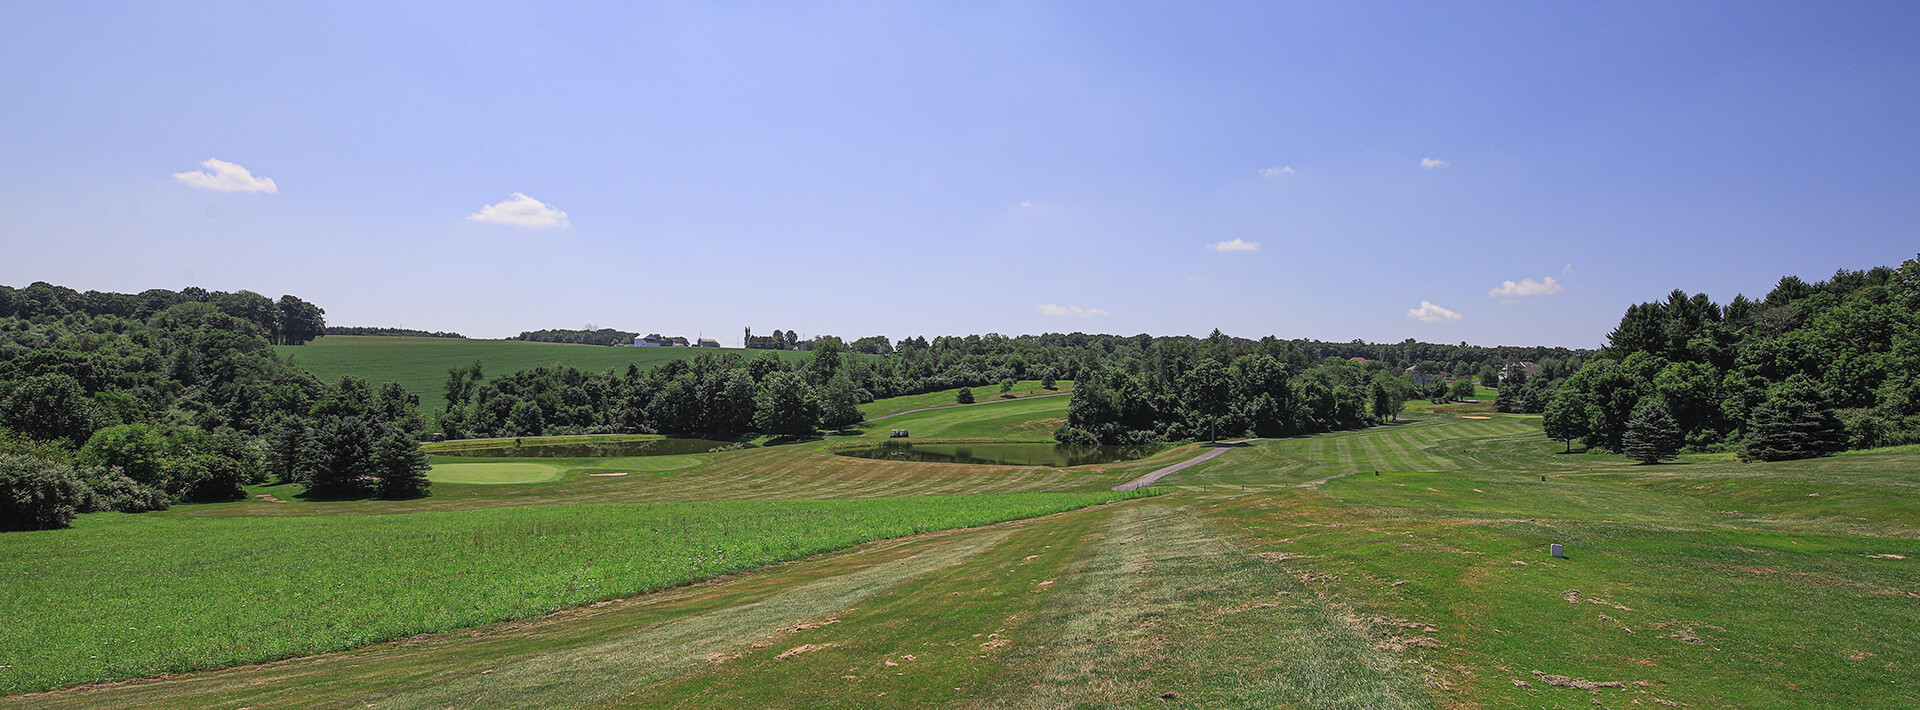 A photo of the Hideaway Hills golf course